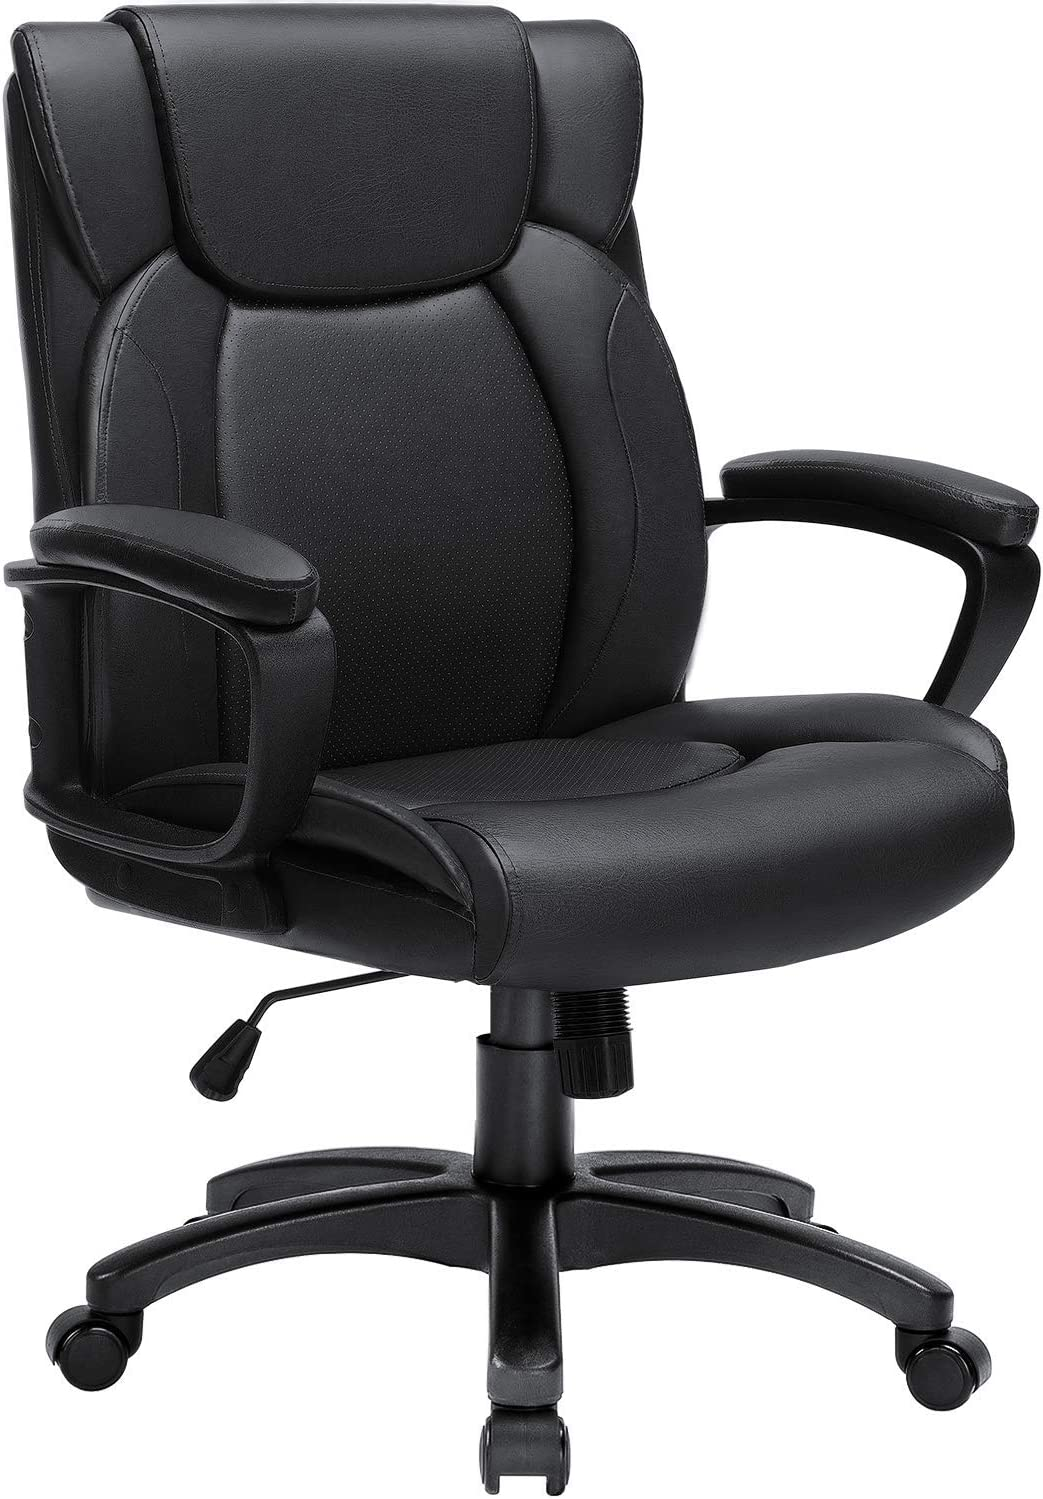 BOSSIN Mid-Back Executive Office Chair Leather Computer Desk Chair with Armrest,Swivel Ergonomic Task Chair with Lumbar Support,Thick Padded Rolling Chair for Adults (Mid-Back, Black)